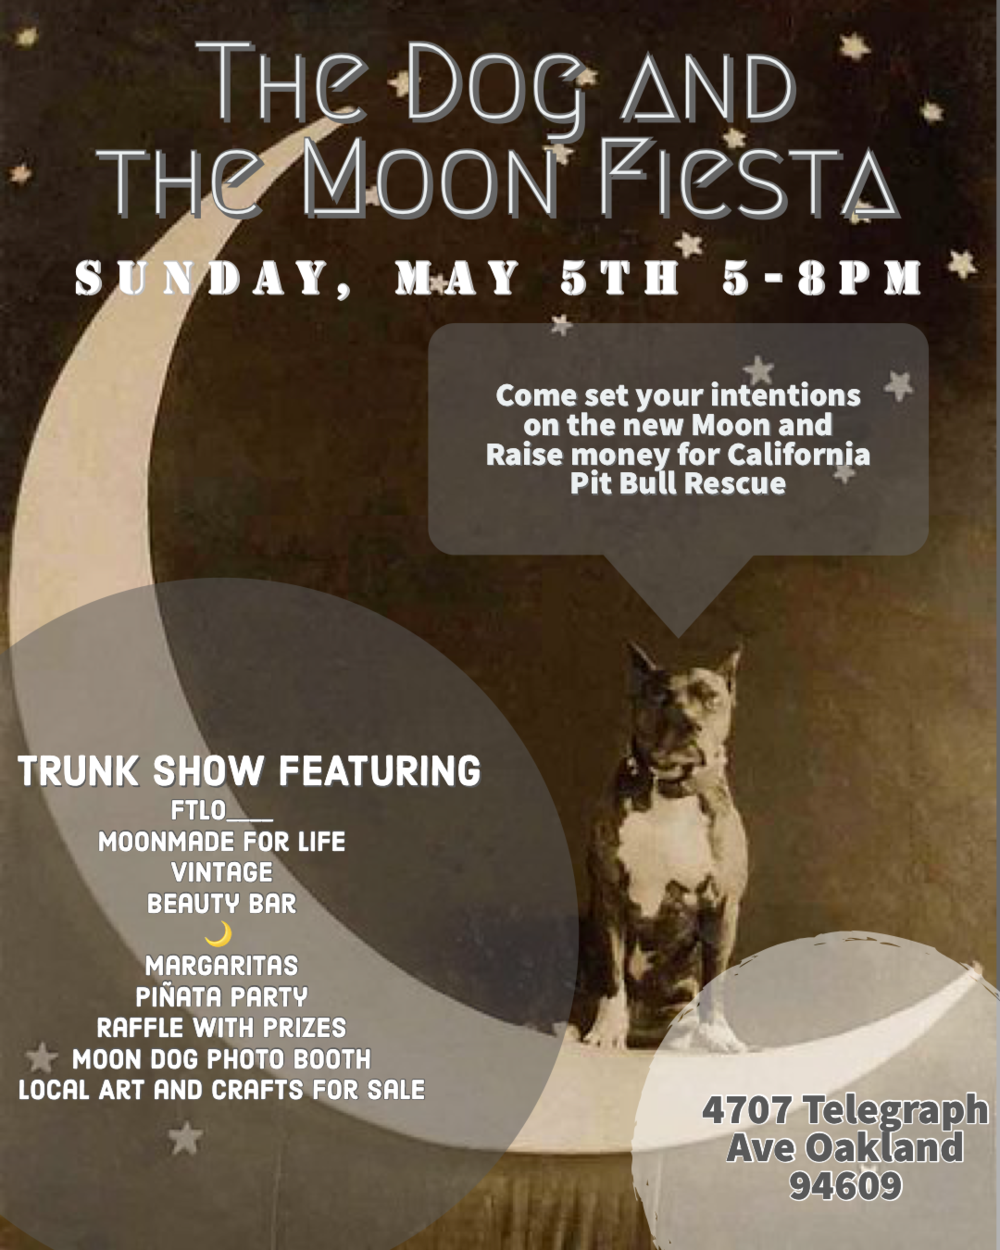 """THE DOG AND THE MOON FIESTA - MAY 5TH 5-8PM 2019SPONSORED BY MOON MADE FOR LIFE AND FTLO____OVER THE LAST FEW MONTH A GROUP OF US HAVE BEEN GATHERING TO CREATE WORKS OF ART THAT WE WILL BE DONATING AND SELLING AT THIS EVENT IN ORDER TO RAISE FUNDS FOR CALIFORNIA PIT BULL RESCUE. CALIFORNIA PIT BULL RESCUE (CPR) IS ORGANIZED FOR THE PURPOSE OF RESCUING AT RISK """"PIT BULL"""" TYPE DOGS AND FACILITATING SOCIAL CHANGE TO ABOLISH THE ABUSE, OVER BREEDING AND MIS-EDUCATION SURROUNDING THE BREED.THERE WILL BE ARTS AND CRAFT SALES, BEAUTY BAR, PHOTO BOOTH, VINTAGE RACK, RAFFLE WITH PRIZES, PINATA AND TRUNK SHOW FEATURING BRANDS FTLO___AND MOON MADE FOR LIFE, NOT TO MENTION MARGARITAS! COME SET YOUR INTENTIONS ON THE NEW MOON AND HELP CPR """"SAVE LIVES, ONE PAW AT A TIME!"""""""